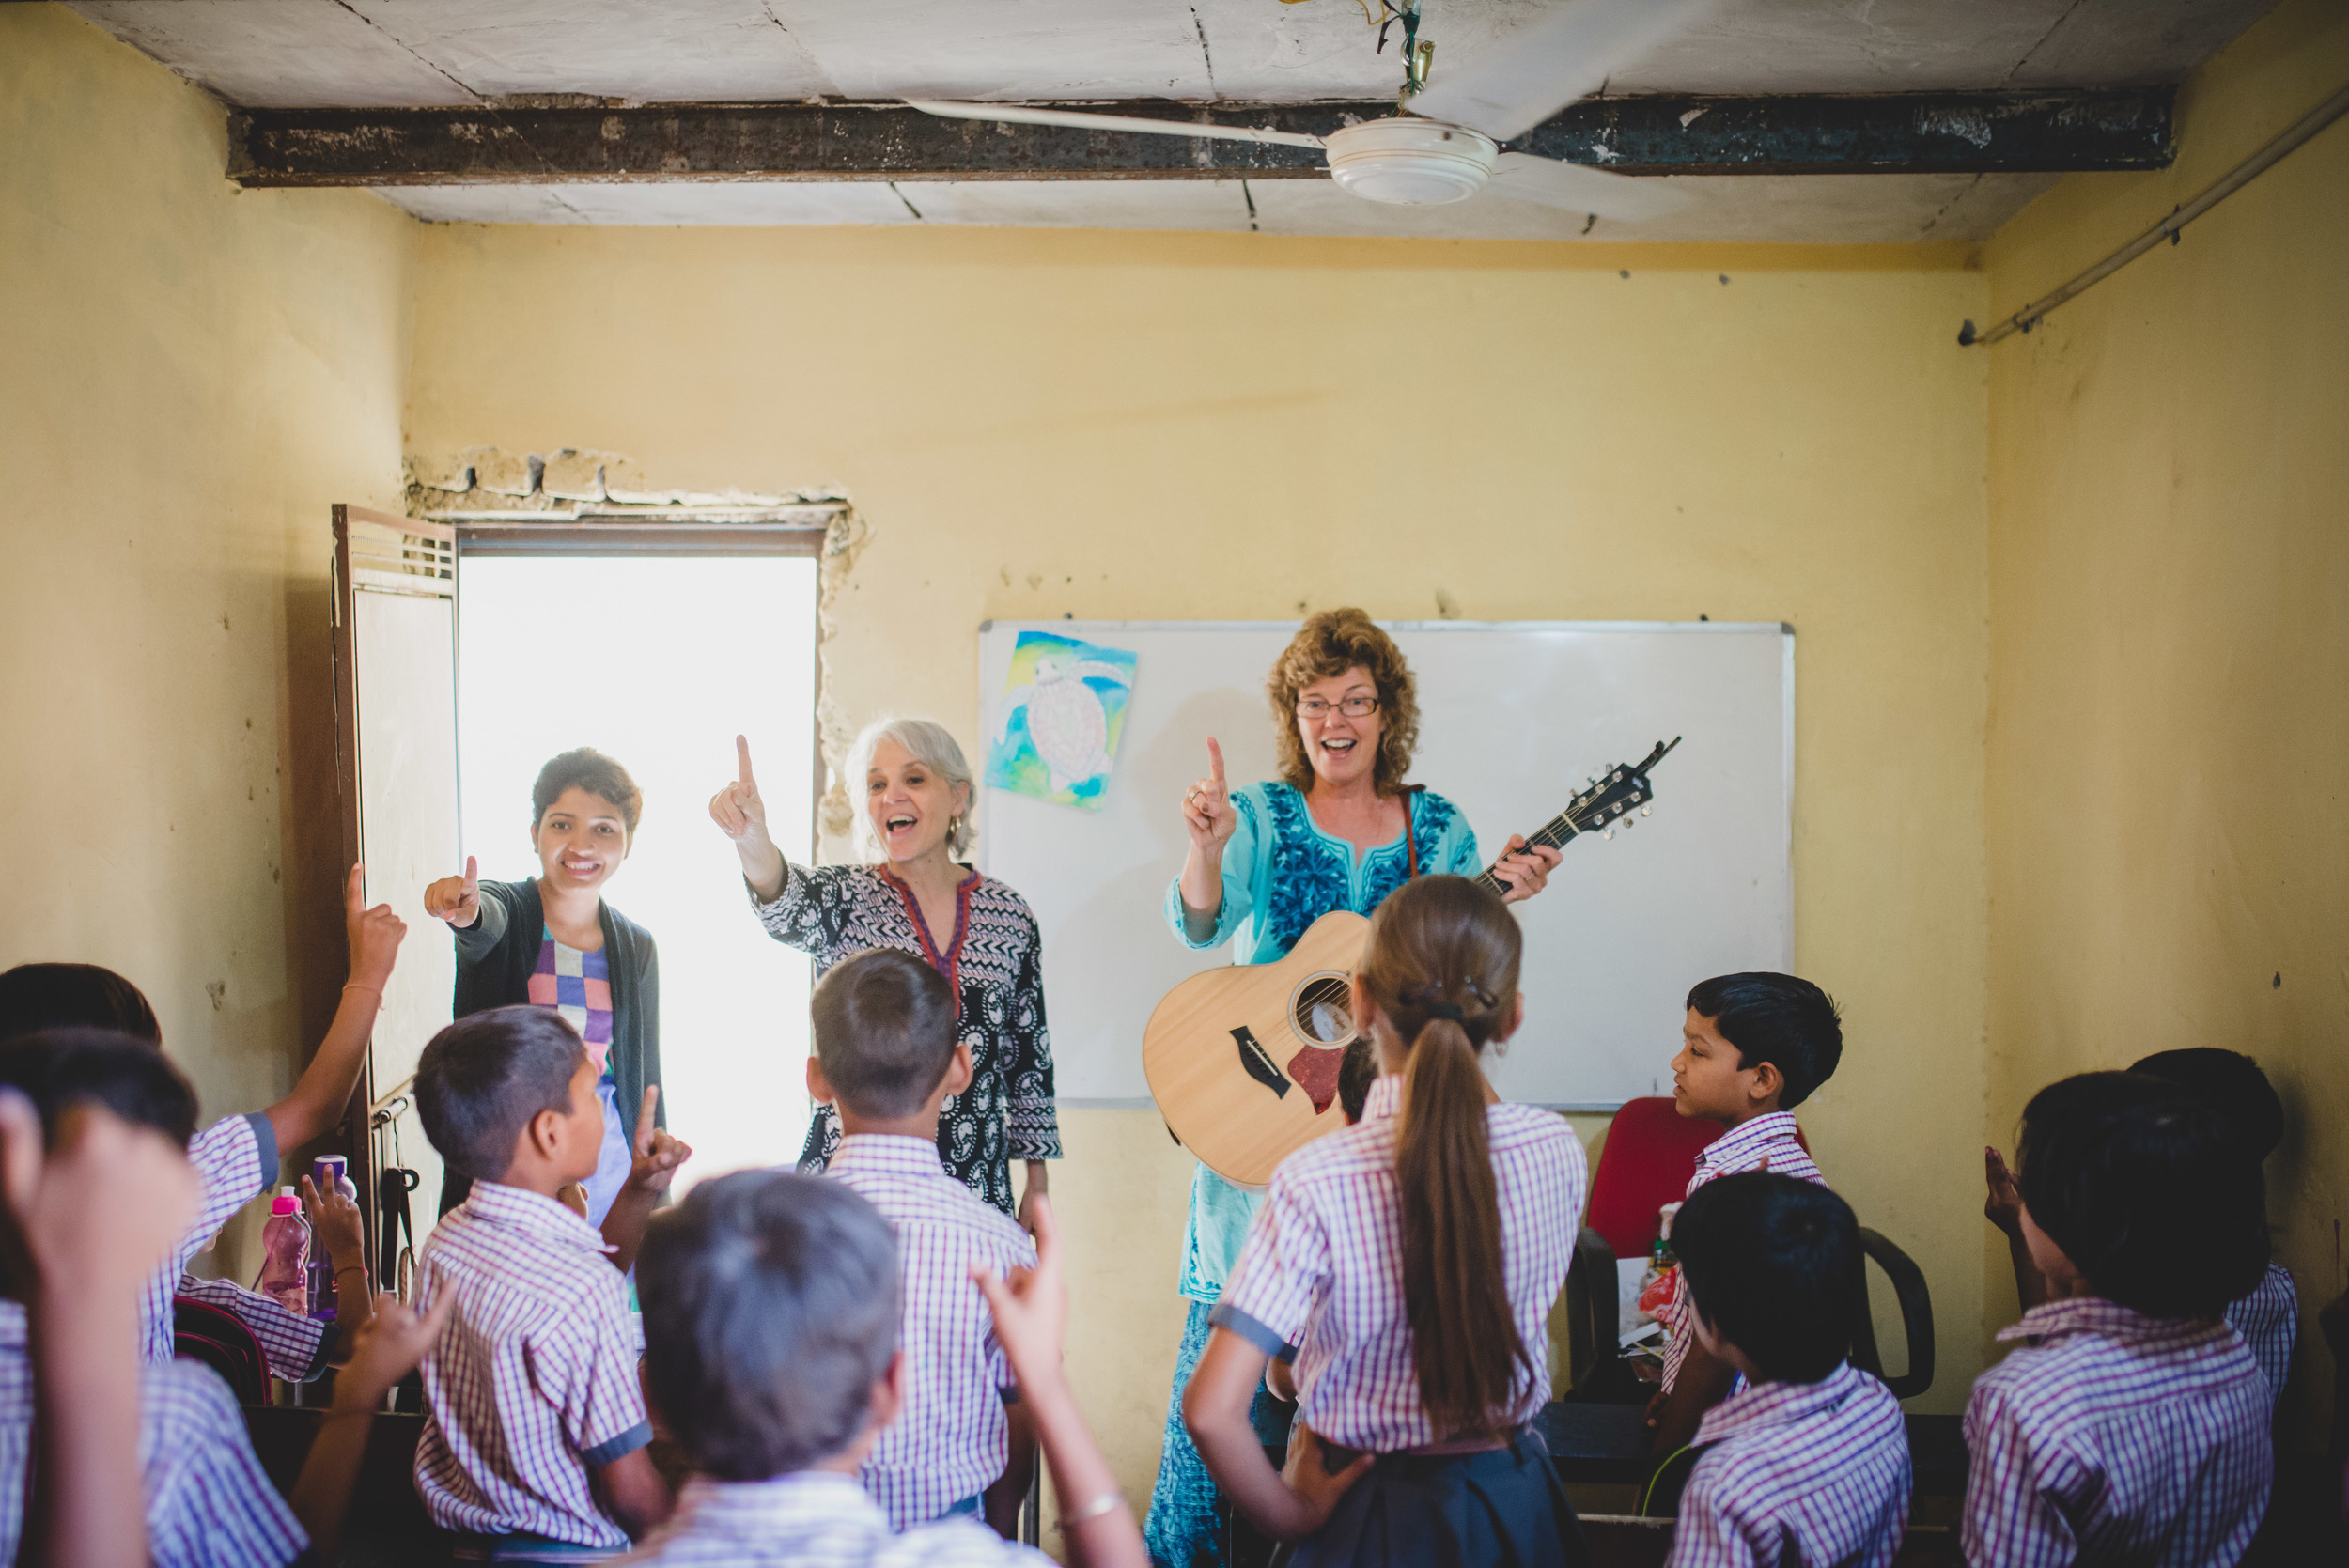 Linda Jobe (right) leads the kids in a song with Rosemary Sherrod, team facilitator, and Mahima, teacher at Aquatic Public School. Linda utilized skills she's gained over many years of leading worship and teaching children. The kids were delighted to learn new songs and motions and Linda was thankful to meet the students her daughter, Kelly, has been teaching for the past month.